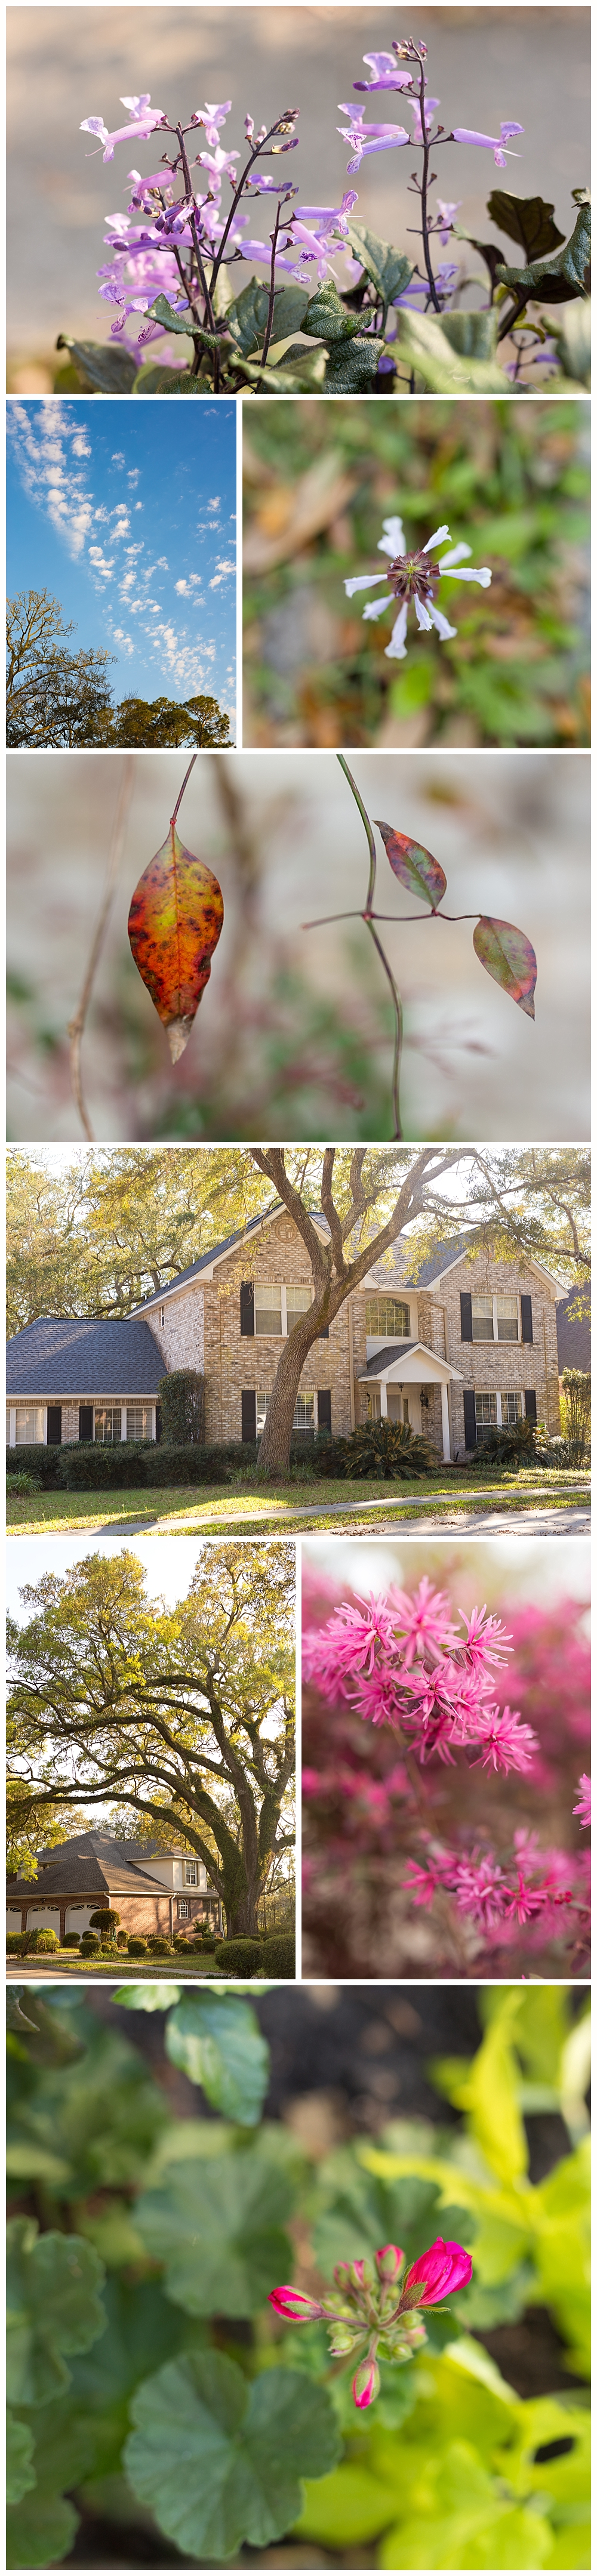 nature photography in Bienville Place neighborhood in Ocean Springs, Mississippi